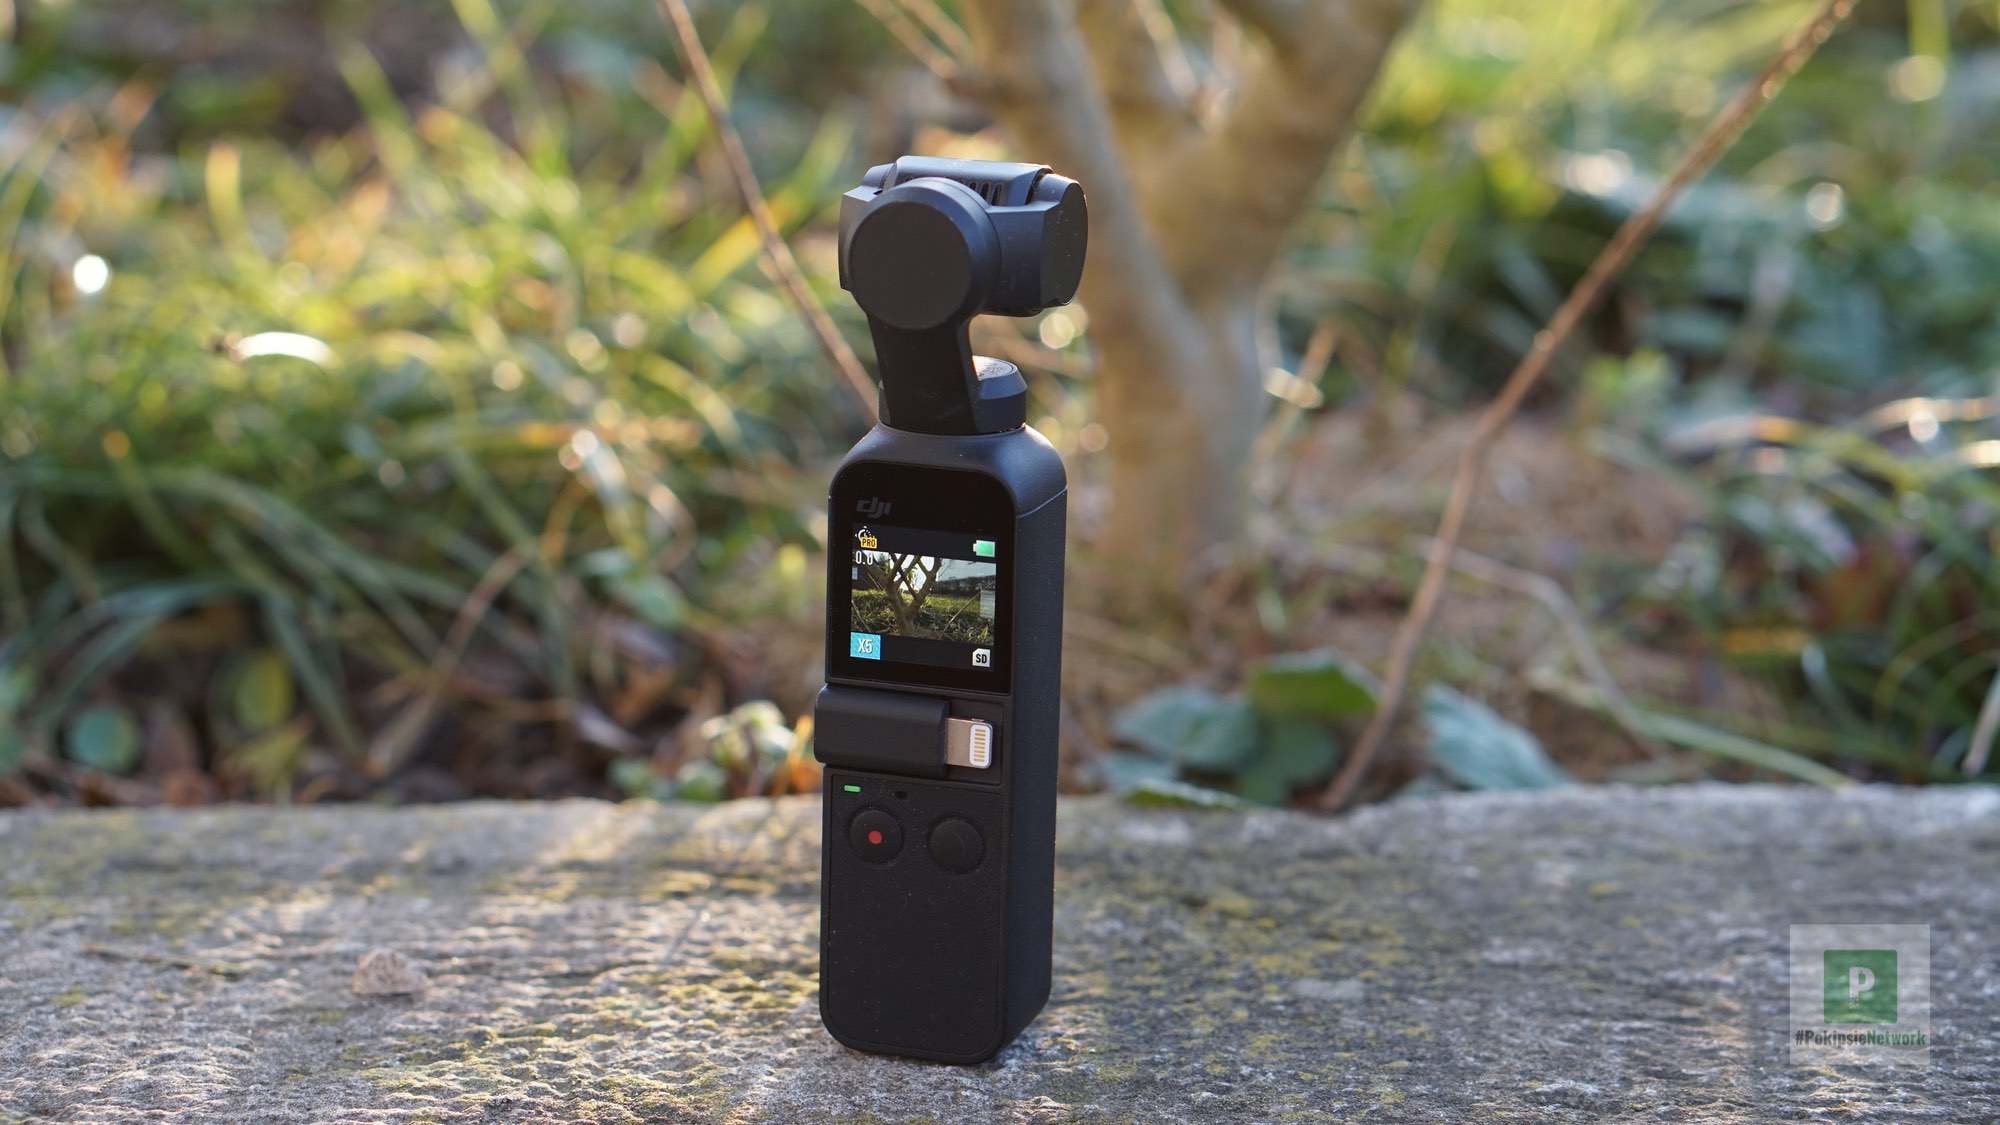 Mein DJI Osmo Pocket